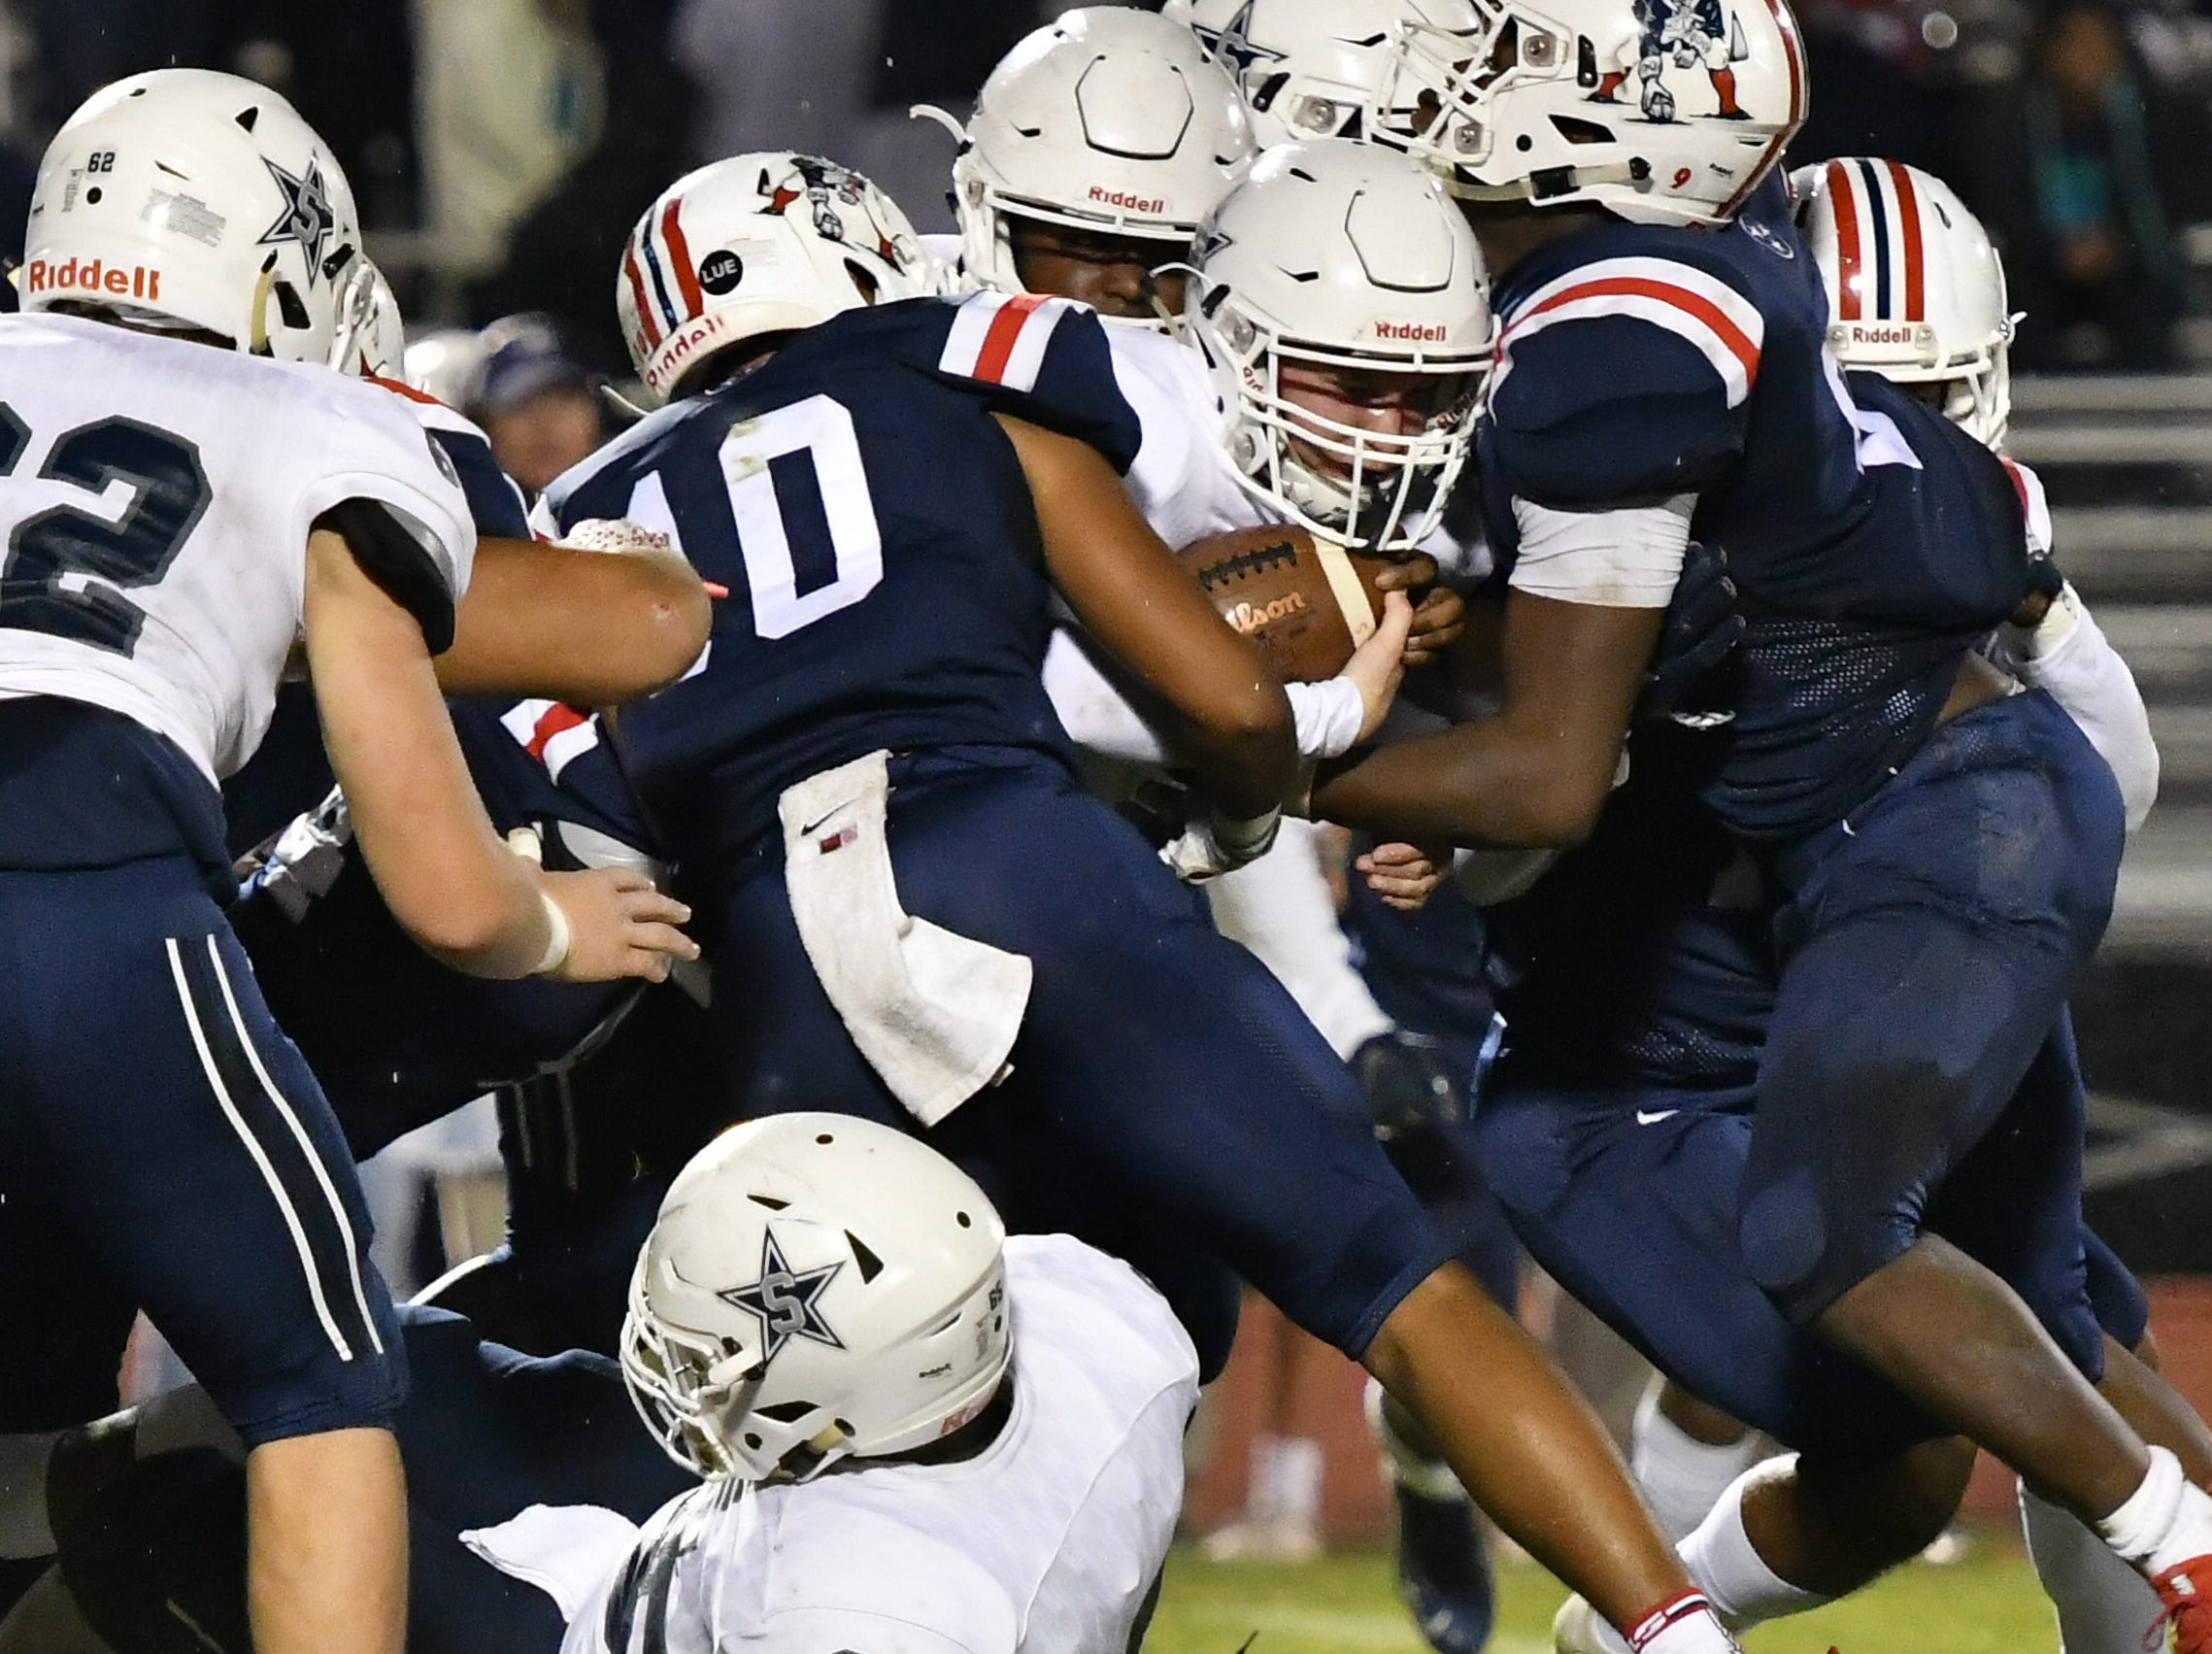 The Oakland defense swarms a Siegel running back Friday night.